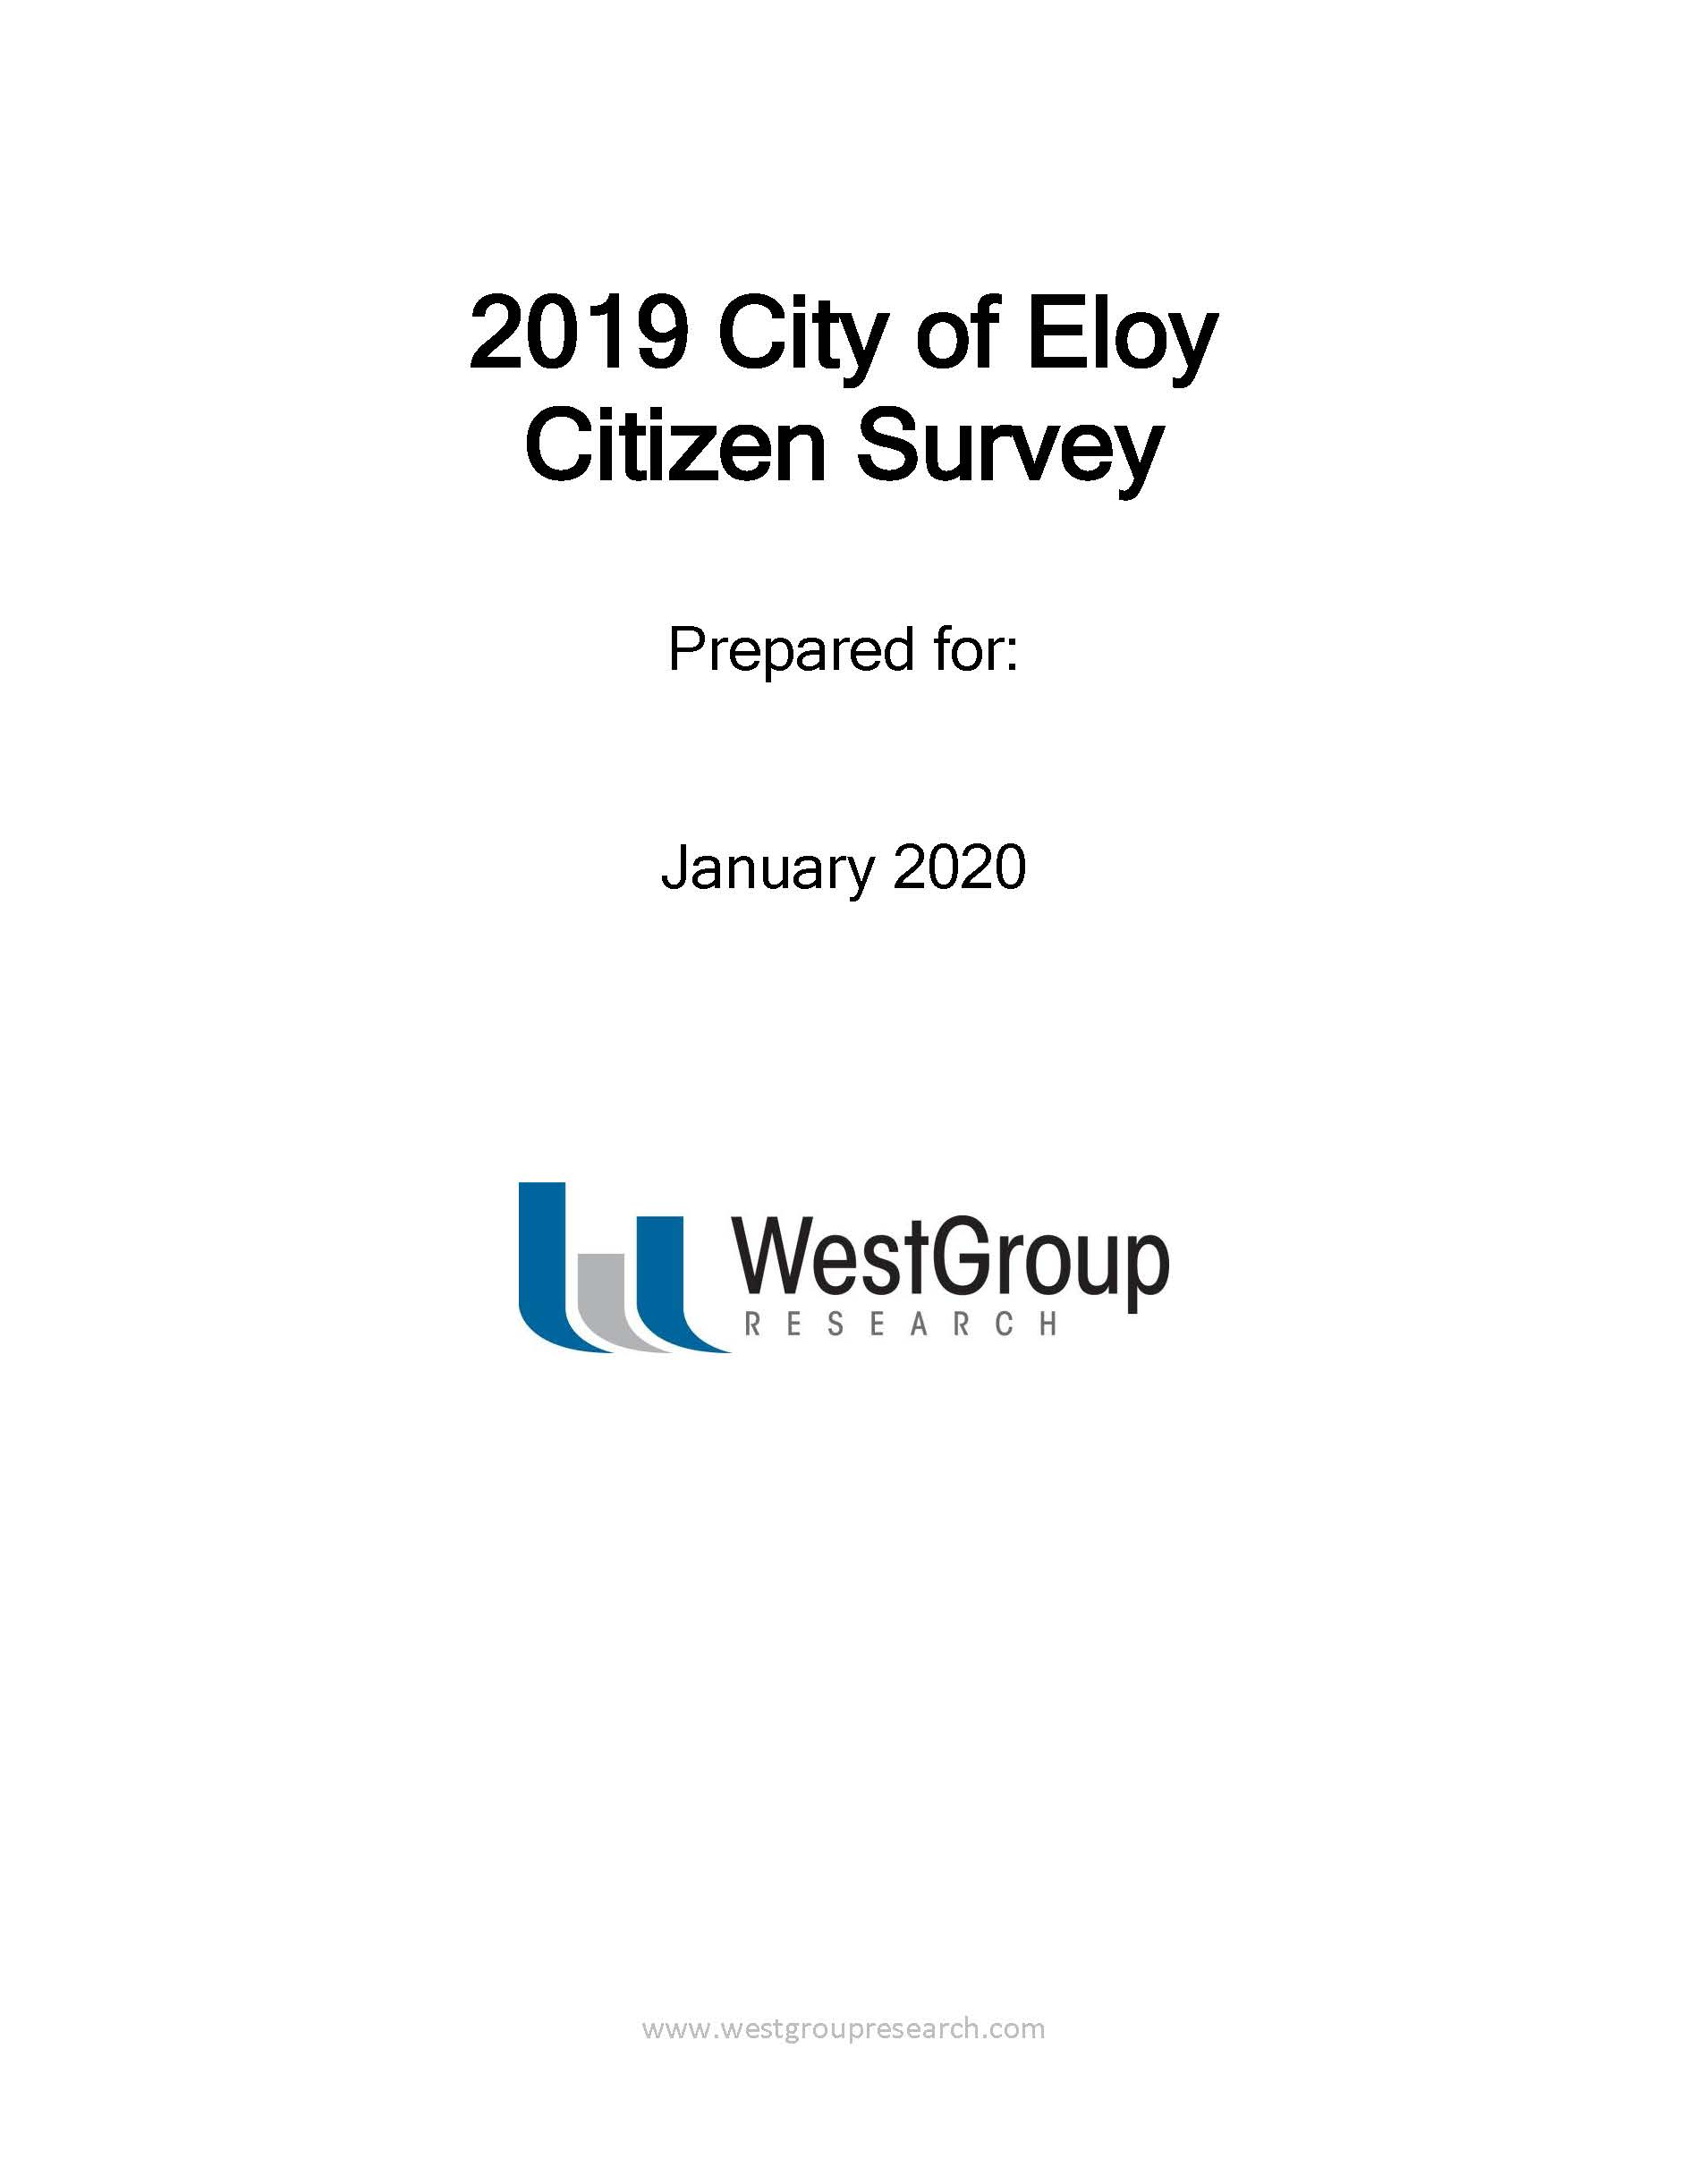 City of Eloy Citizen Survey -Front Cover